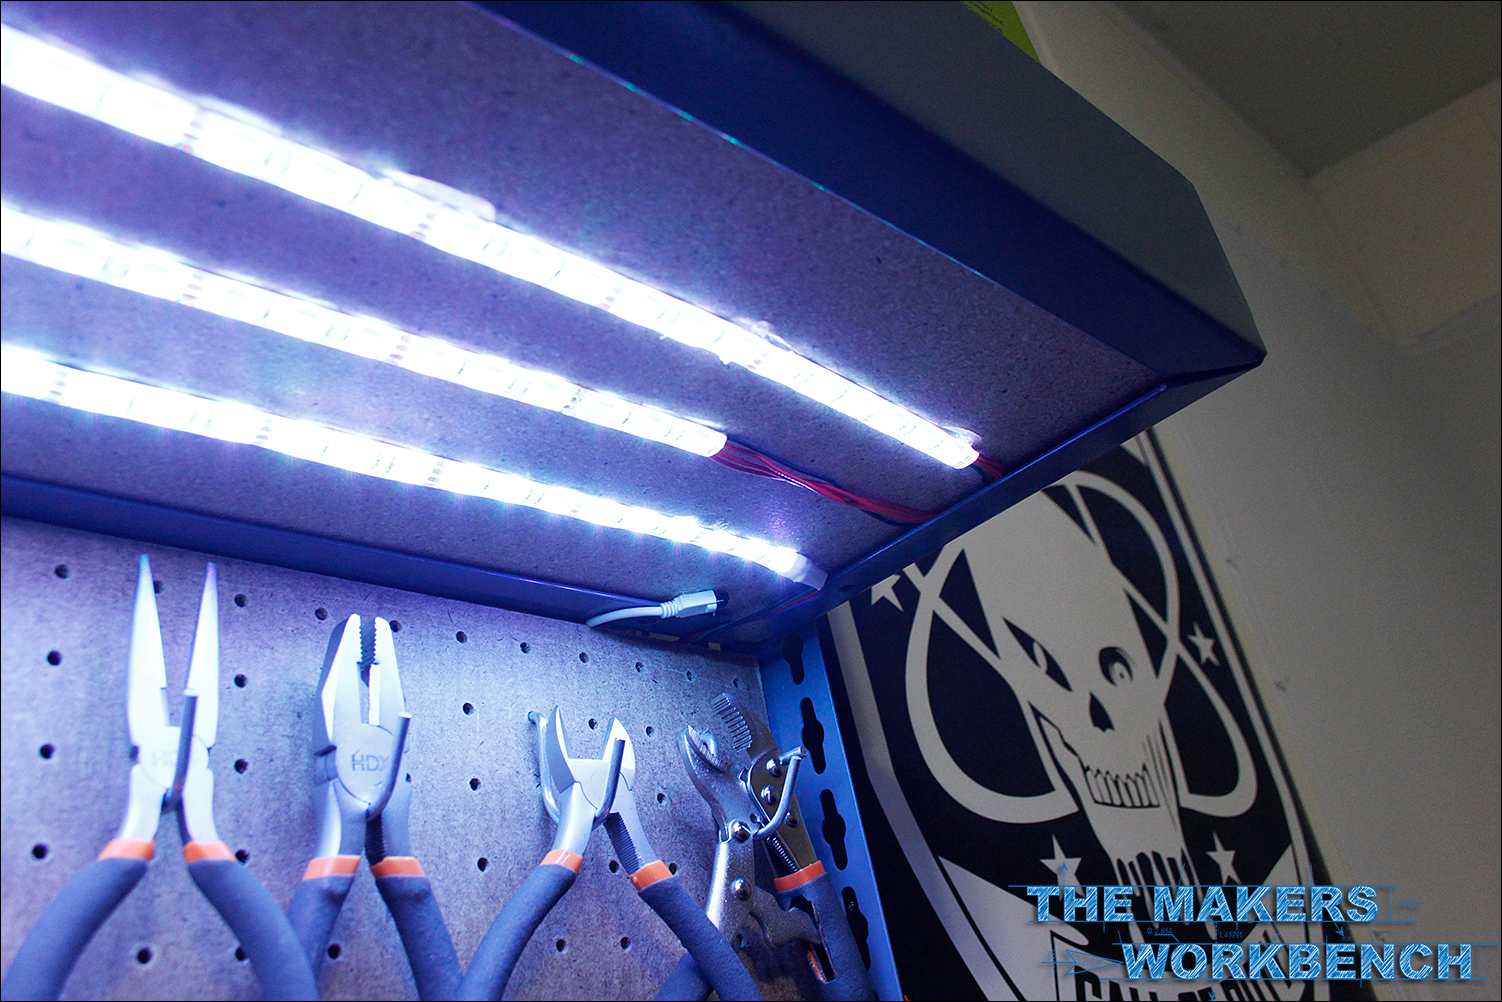 RGB LED Under-Shelf Bench Lighting | The Makers Workbench